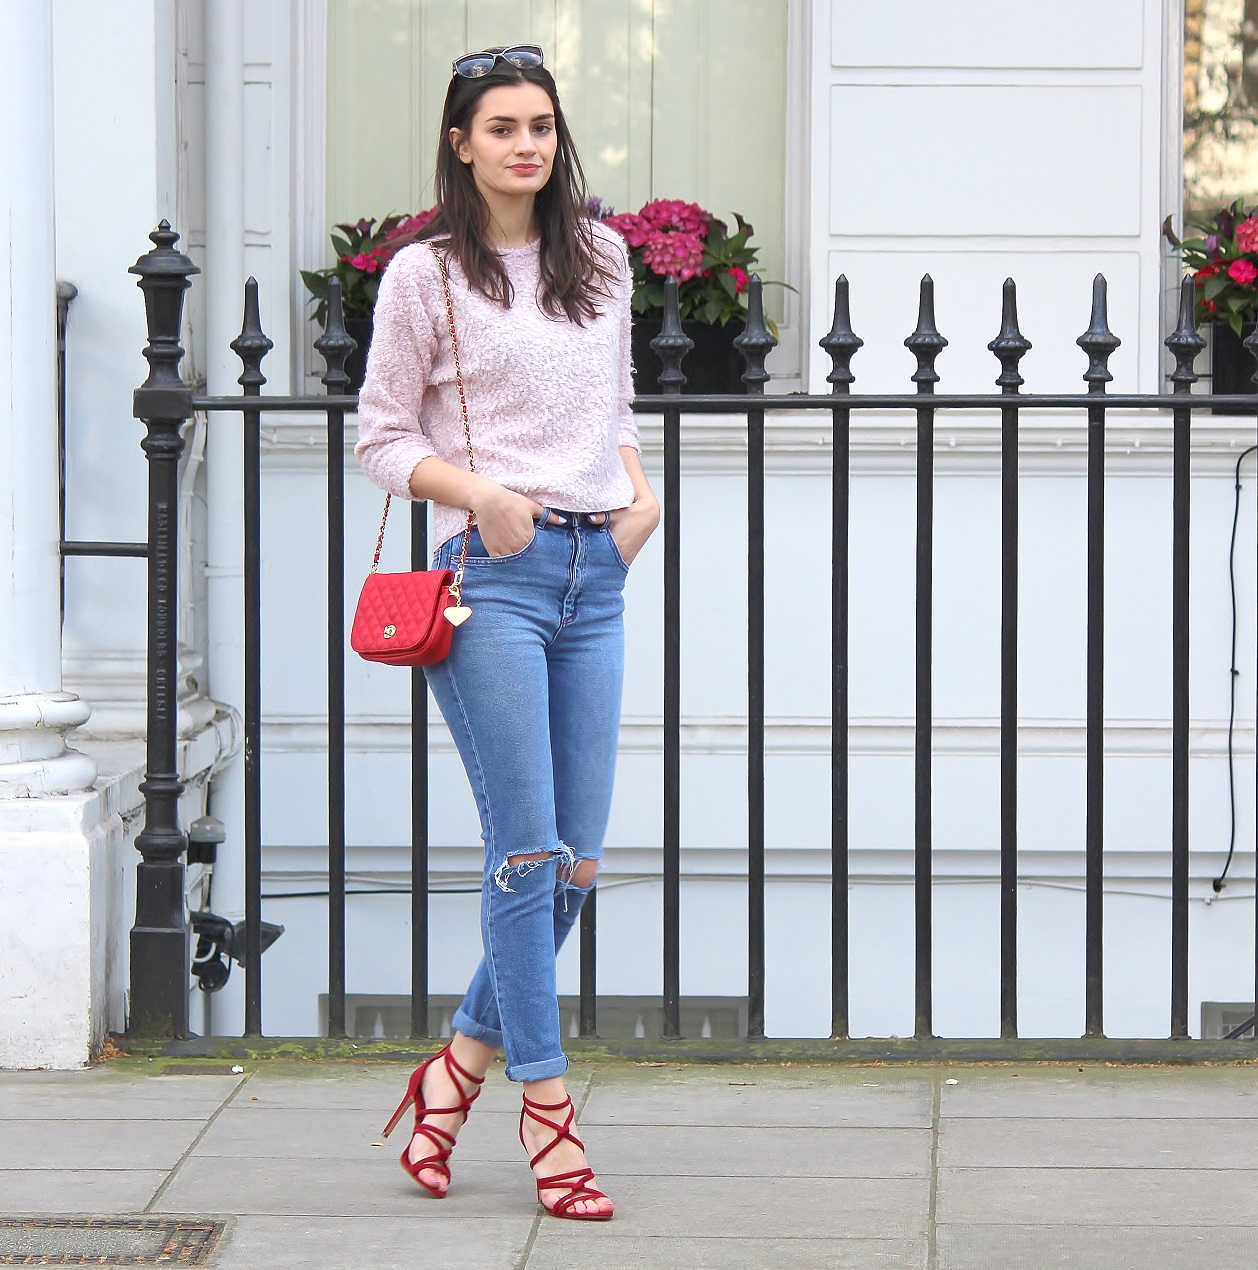 peexo fashion blogger wearing pink fluffy jumper and ripped mom jeans and red strappy heels and red small bag in spring